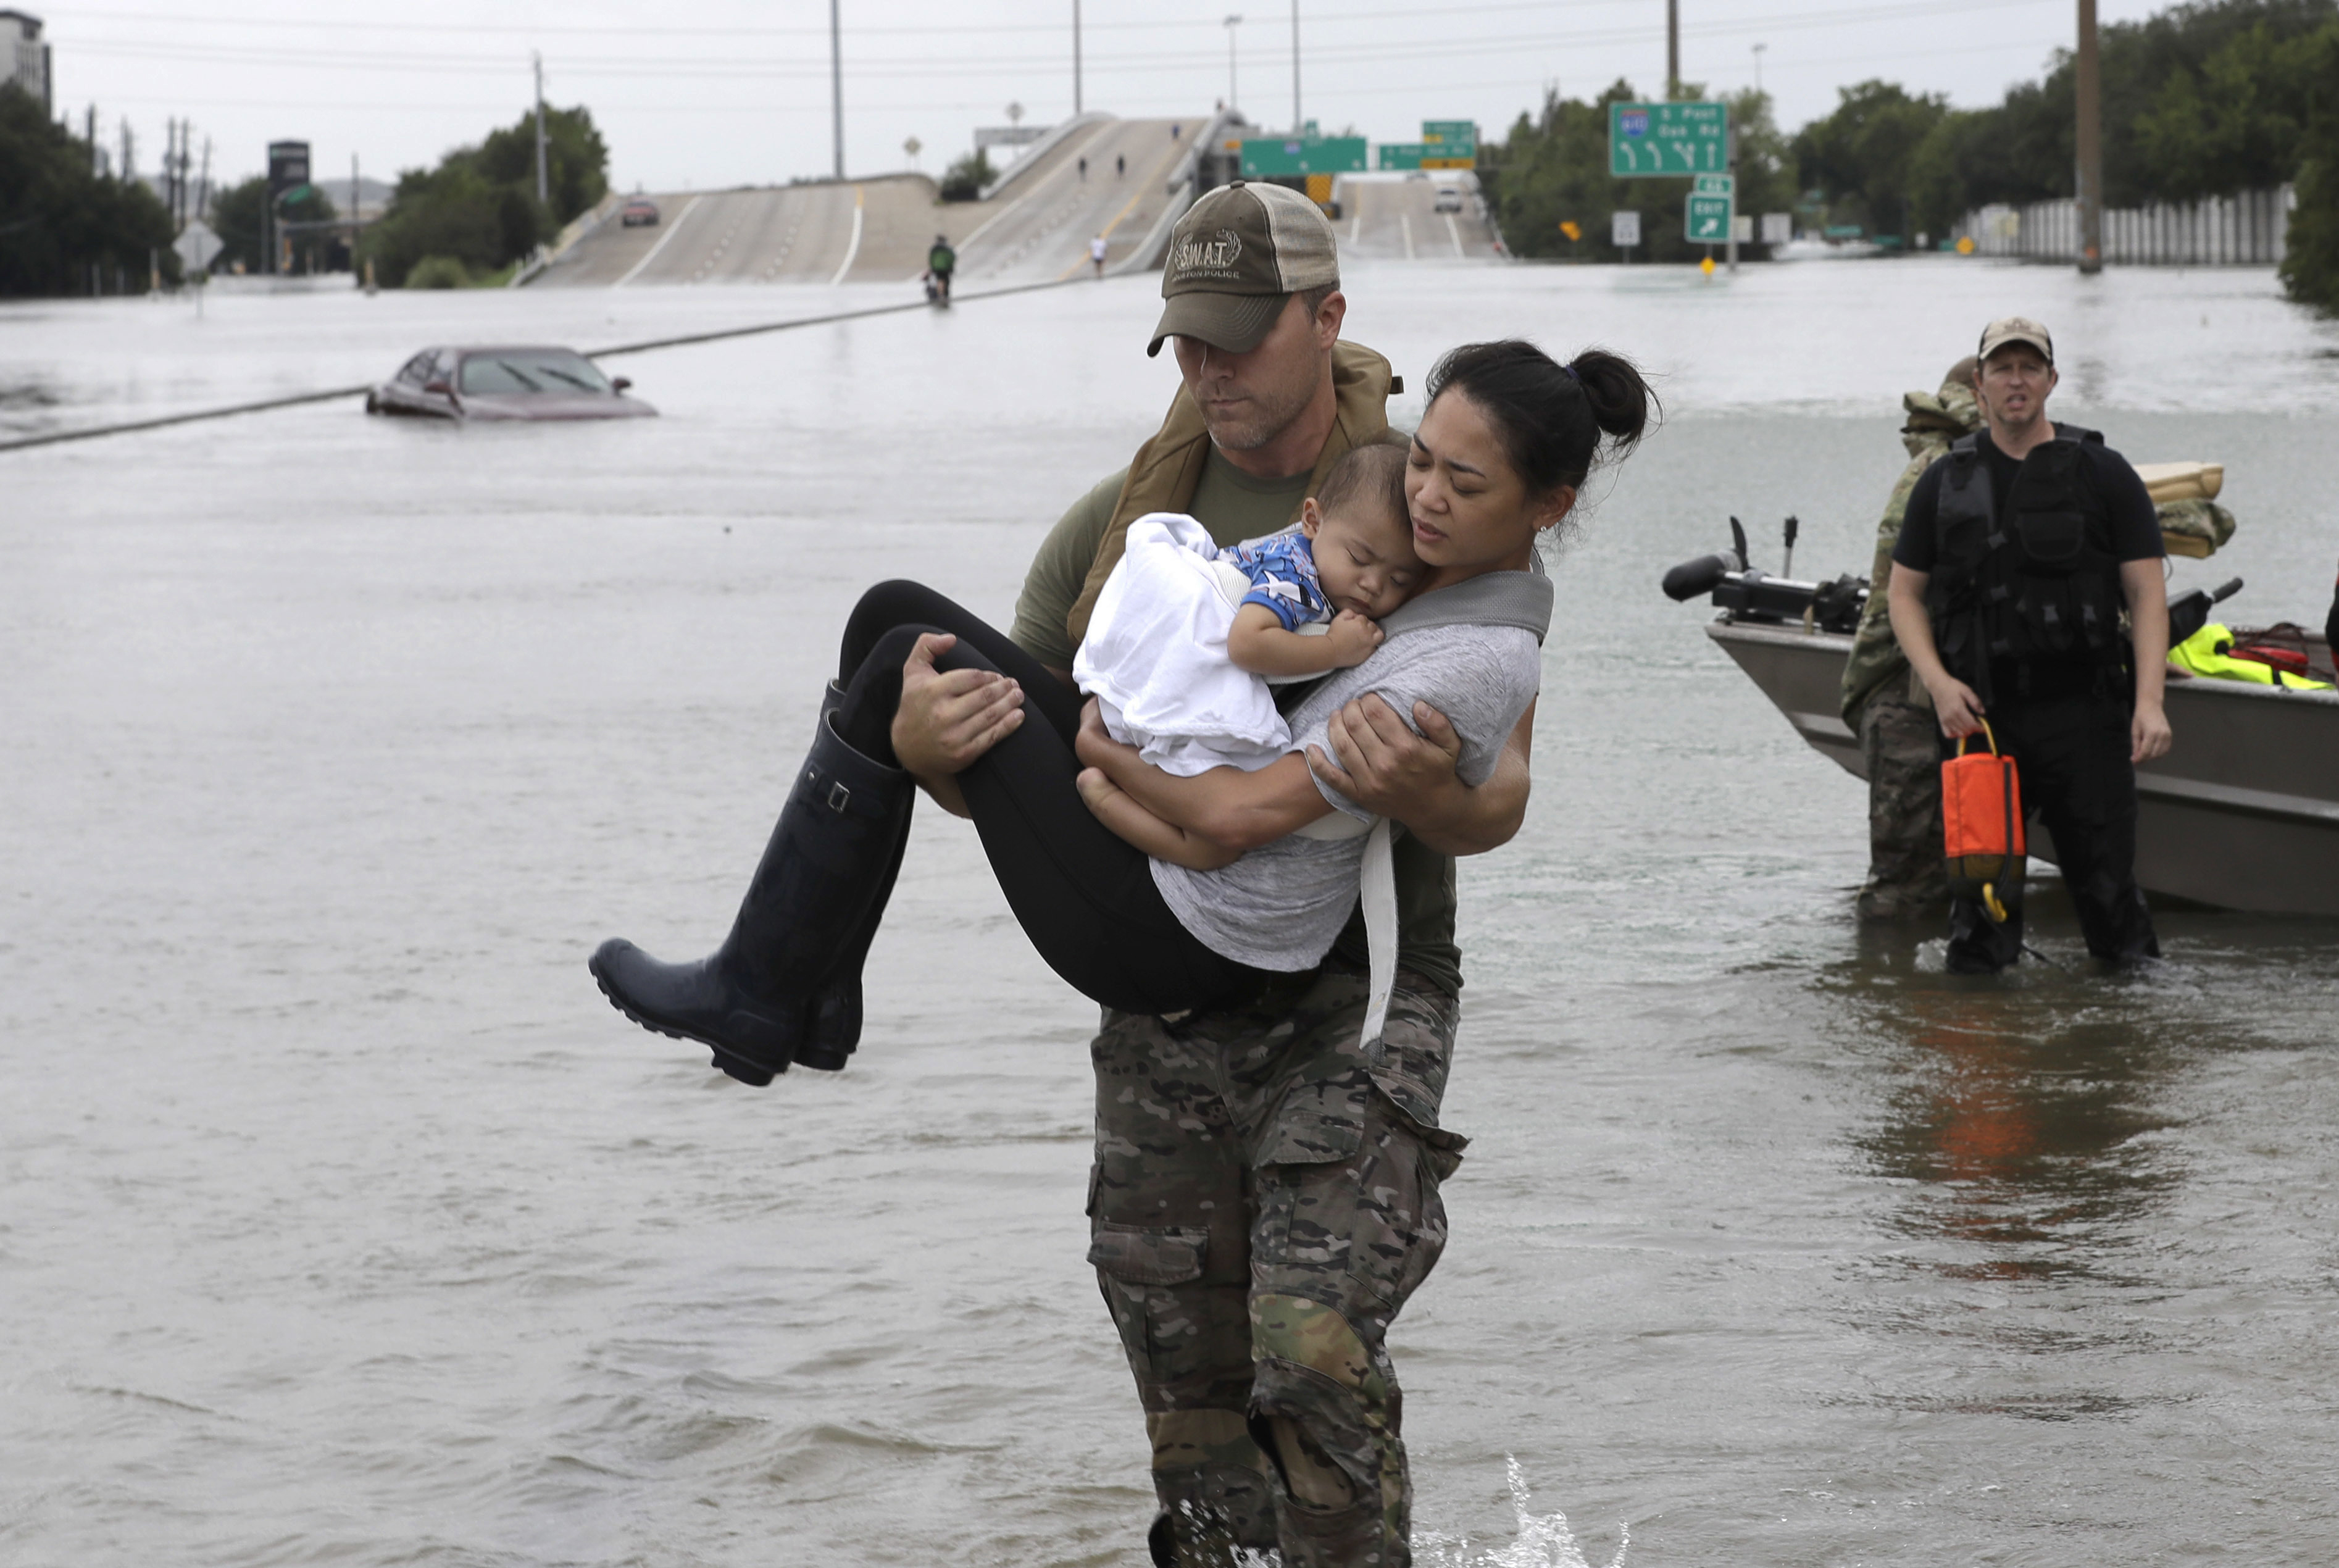 An action shot of Houston Police simply showed SWAT officer Daryl Hudeck doing his job: he was carrying Catherine Pham and her 13-month old son Aiden after rescuing them from their home surrounded by the floodwaters in Hurricane Harvey in August. But once one man used the photo in service of his argument: men are the ultimate protecters, the image paired with the controversial stance launched a widely circulated debate about gender dynamics.